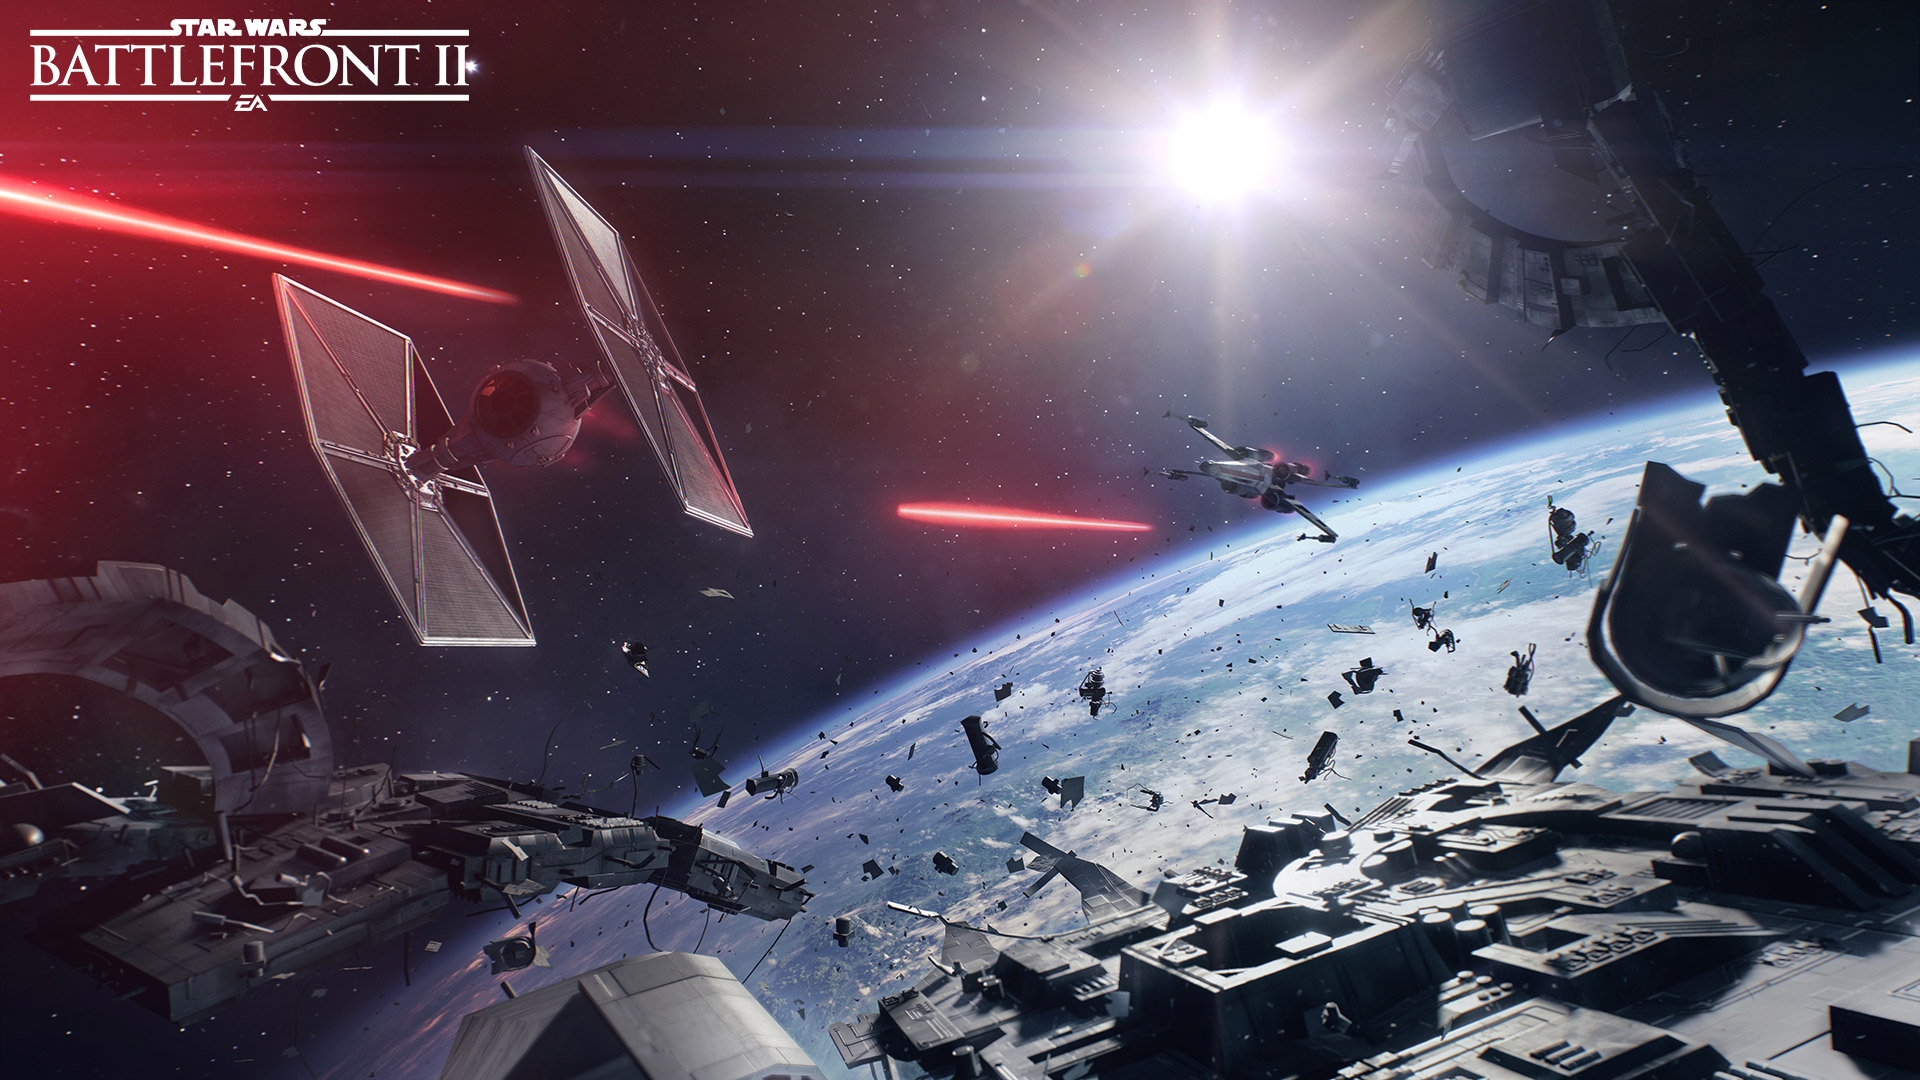 Star Wars Battlefront 2 background 8